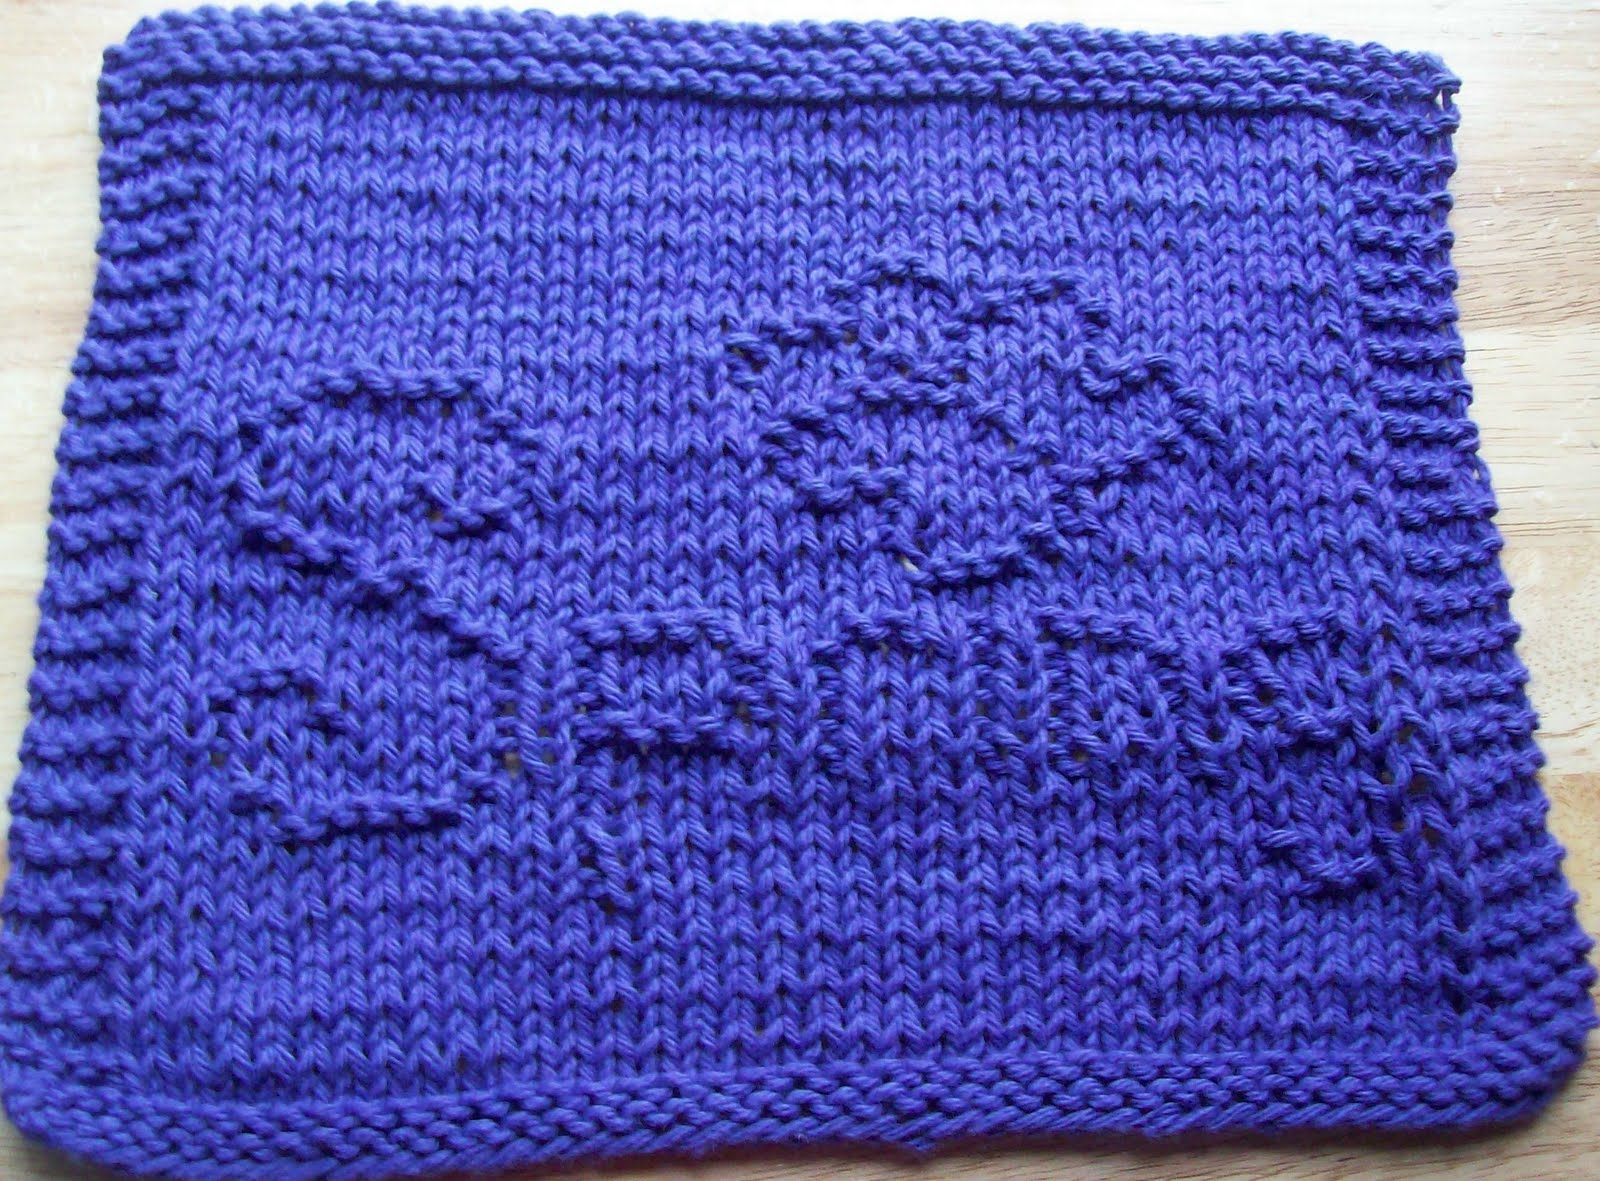 Knitted Butterfly Dishcloth Pattern Digknitty Designs February 2011